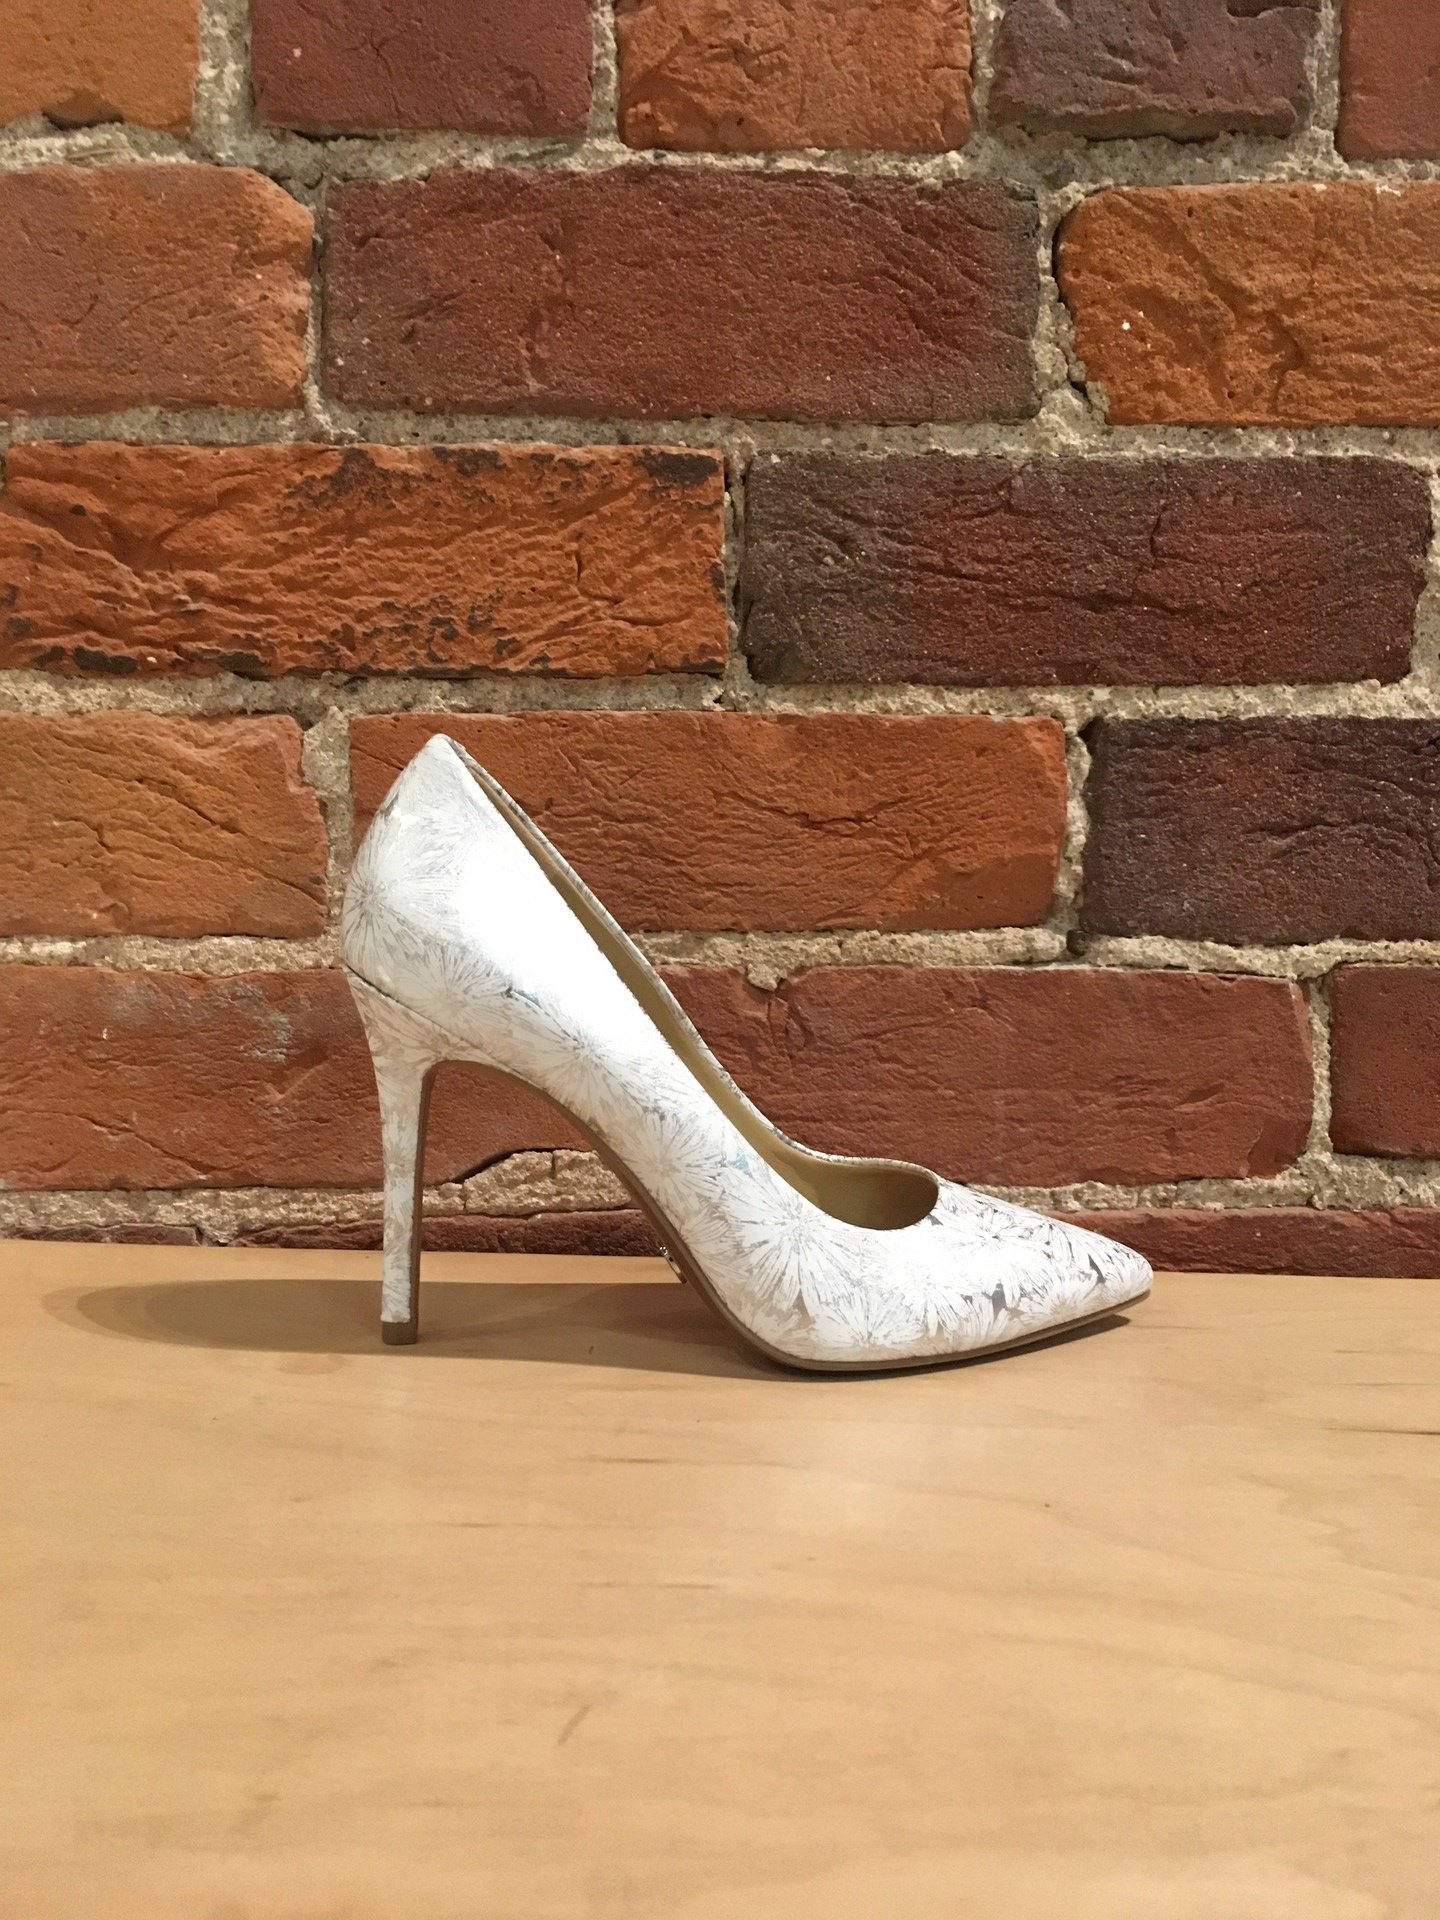 MICHAEL KORS - CLAIRE PUMP IN OPT/SILVER